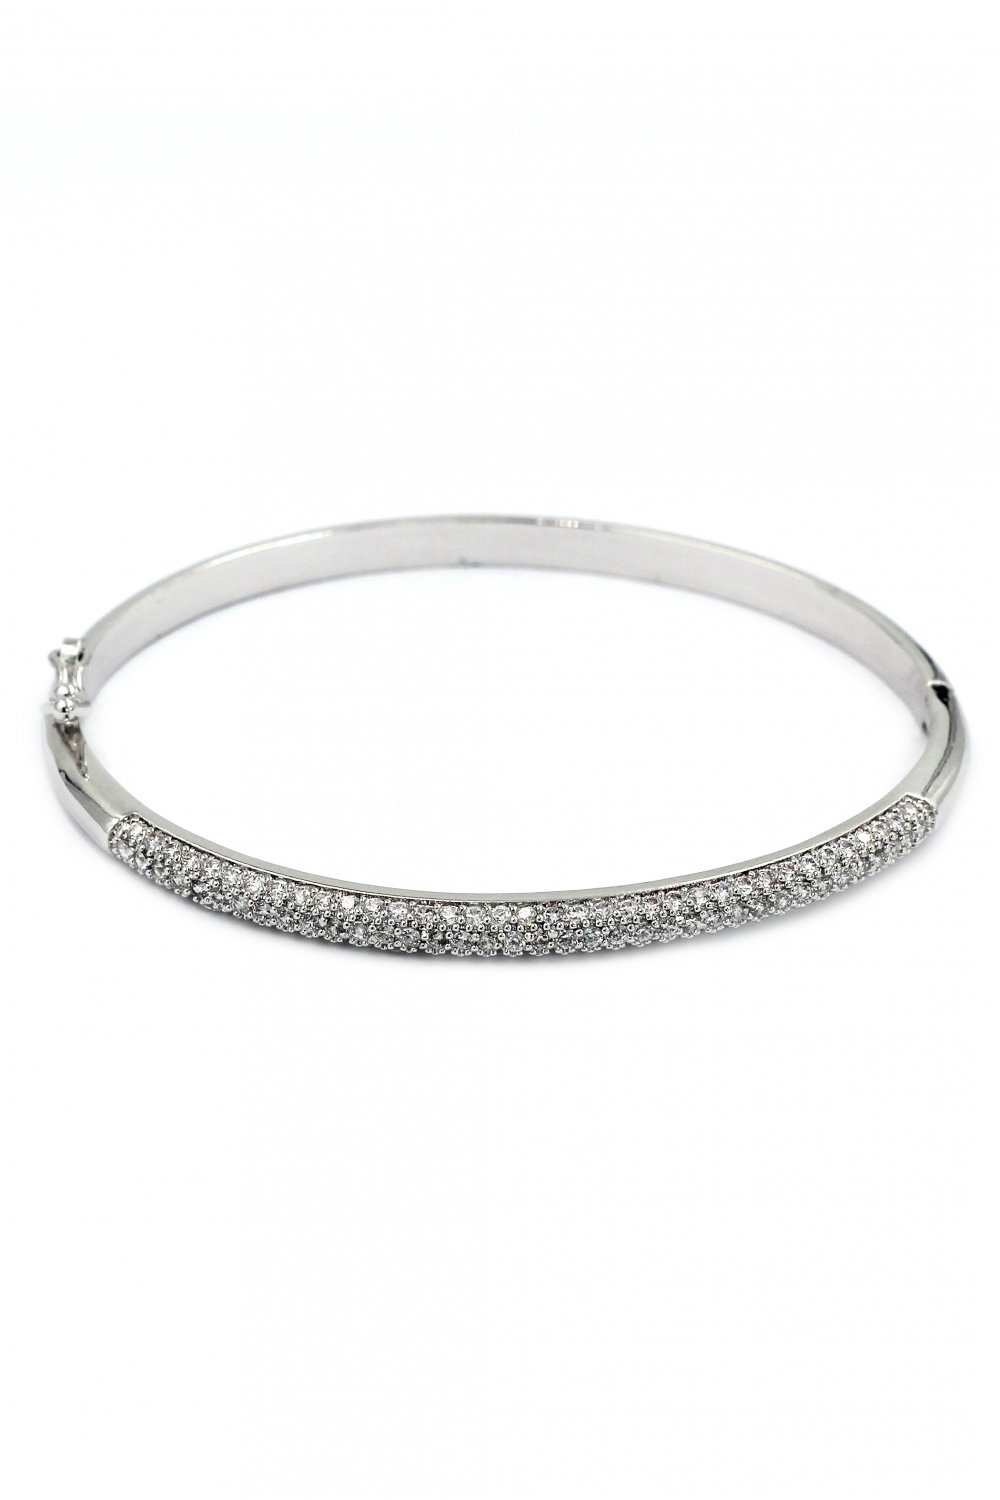 Fashion micro-small crystal silver bracelet